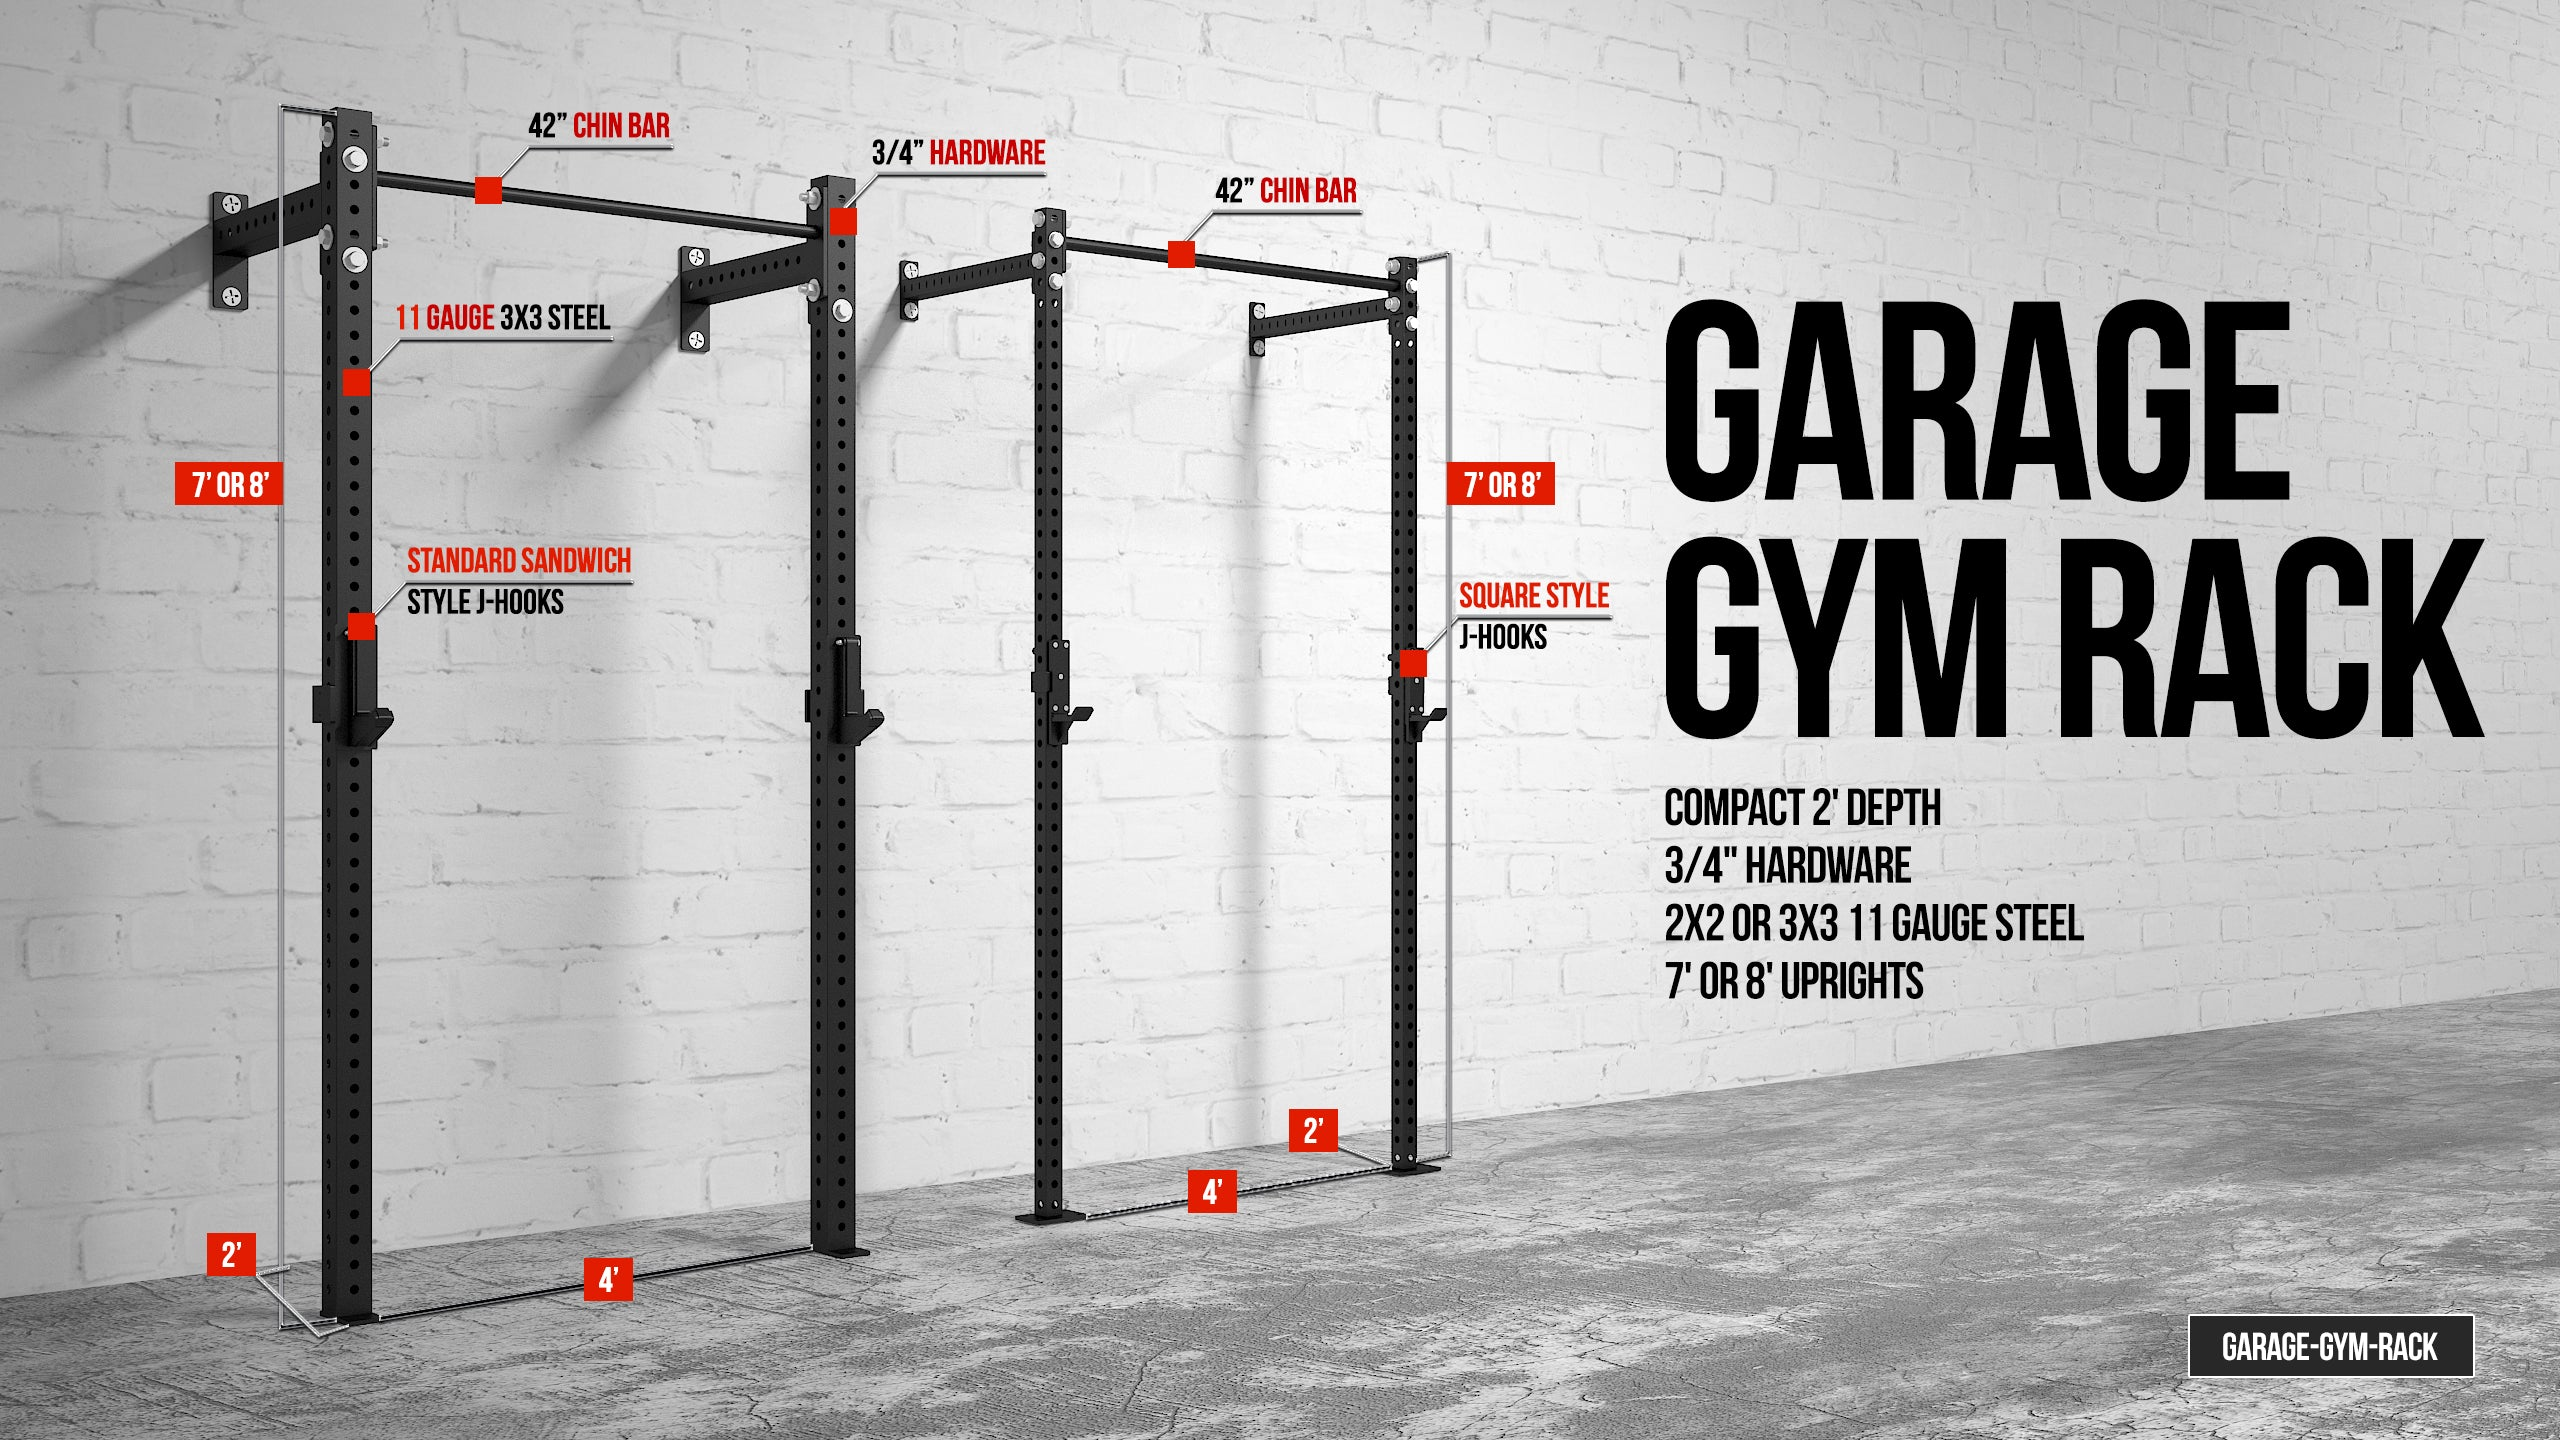 Garage gym compact nutrition : American barbell garage gym rack